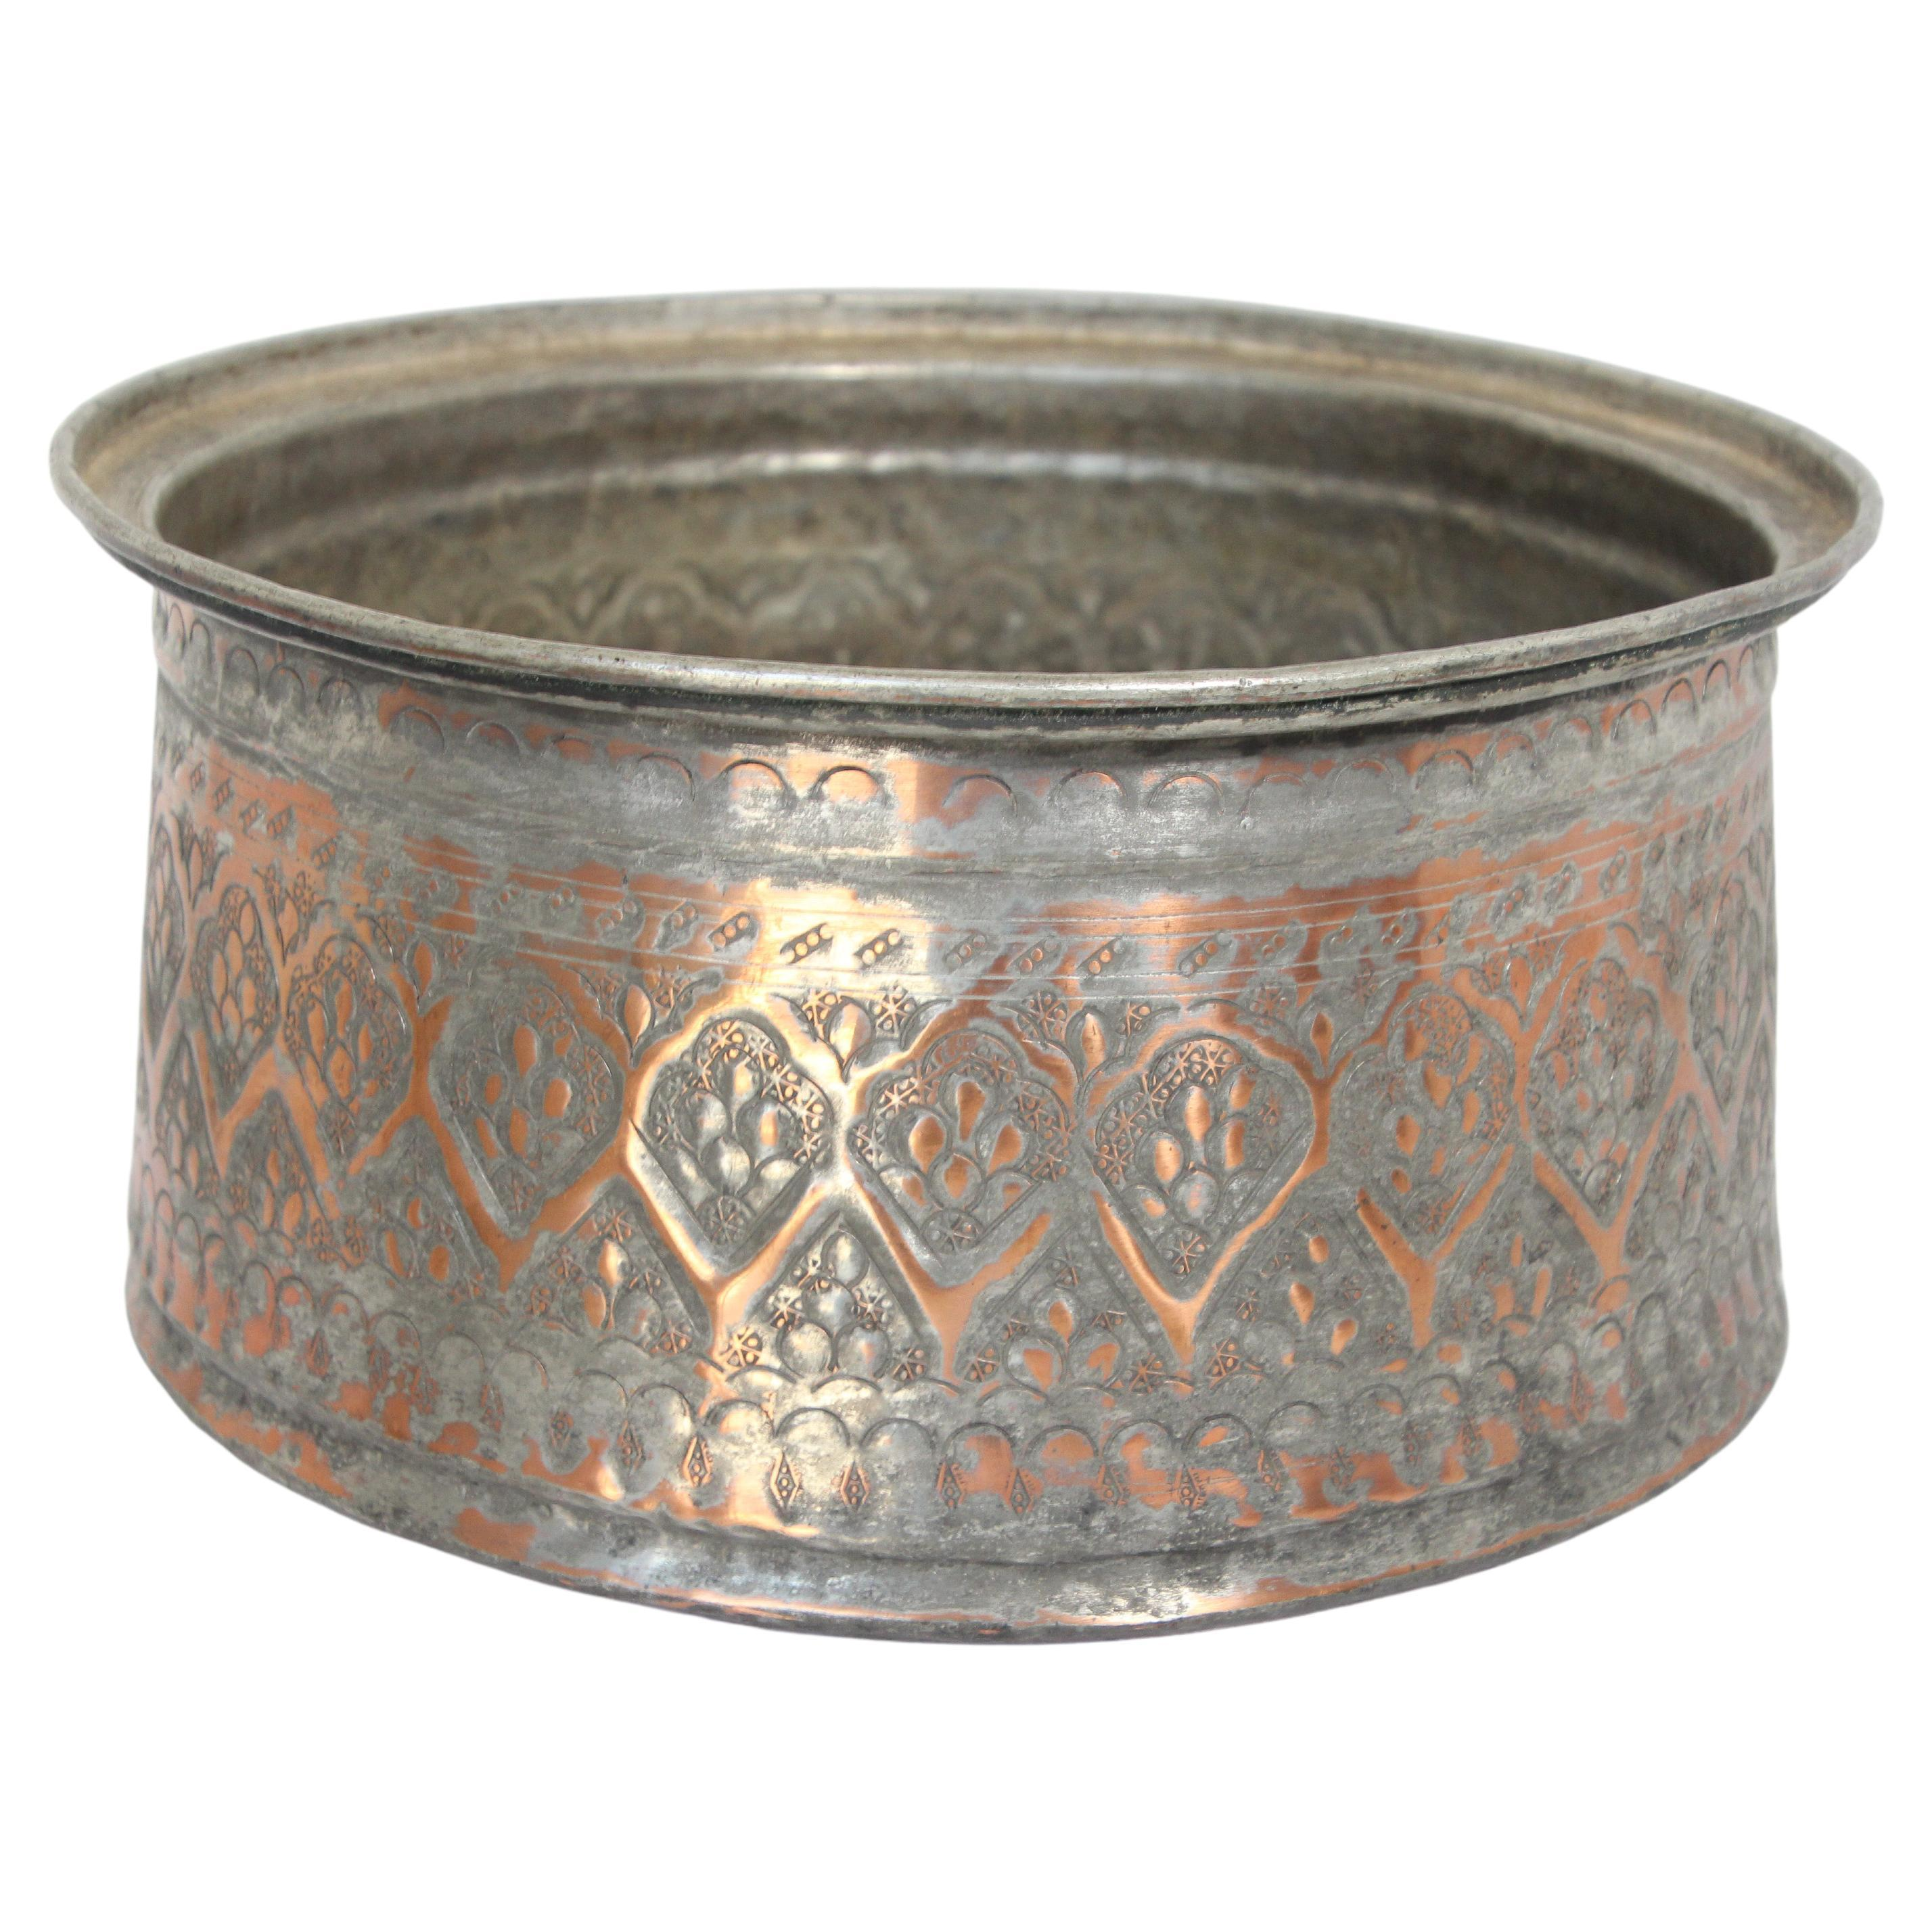 19th Century Indo Persian Mughal Tinned Copper Bowl